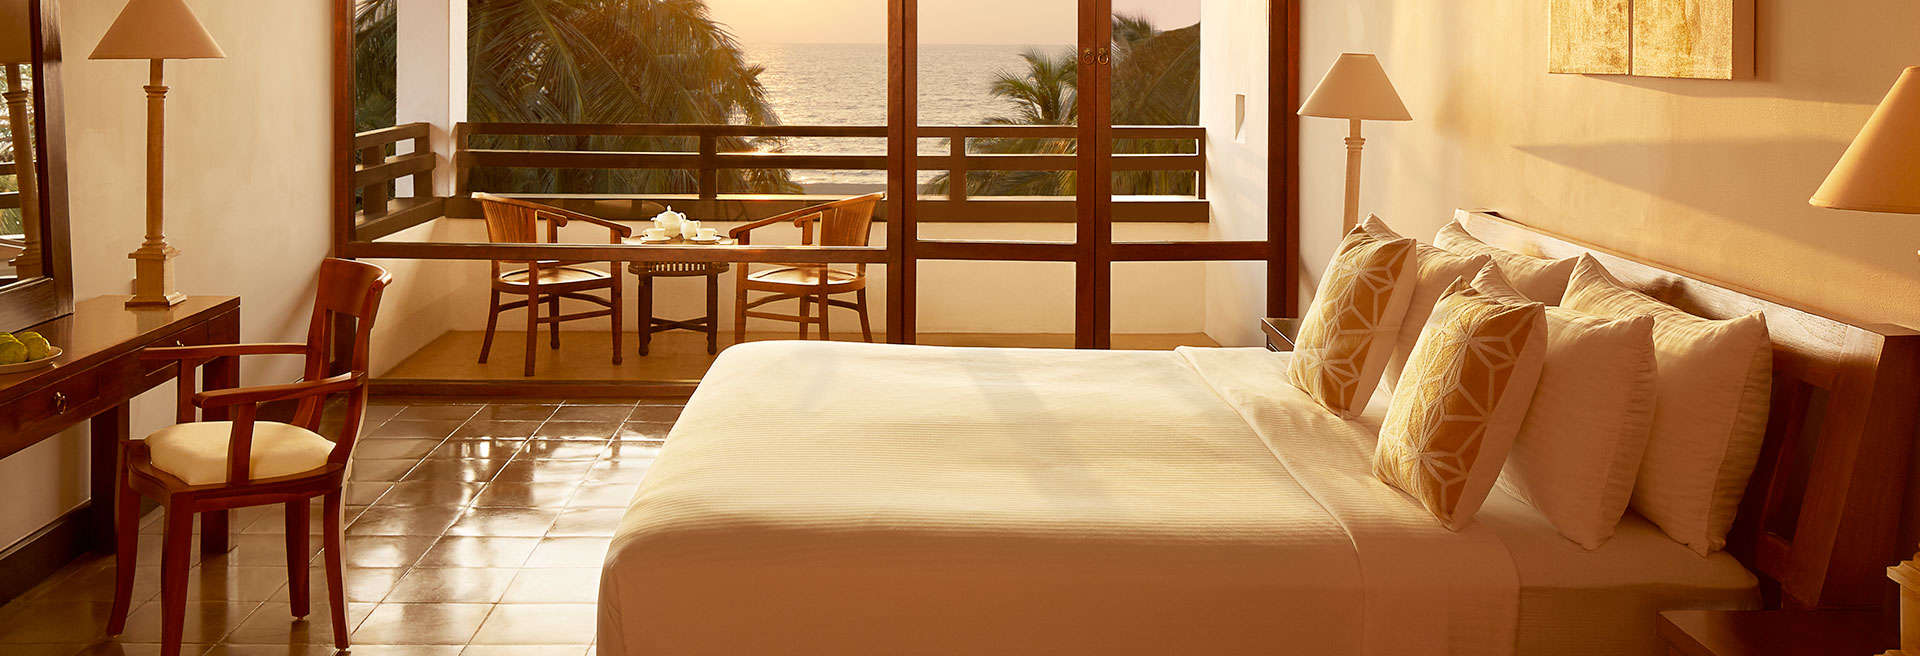 Deluxe Rooms with a balcony overlooking the ocean